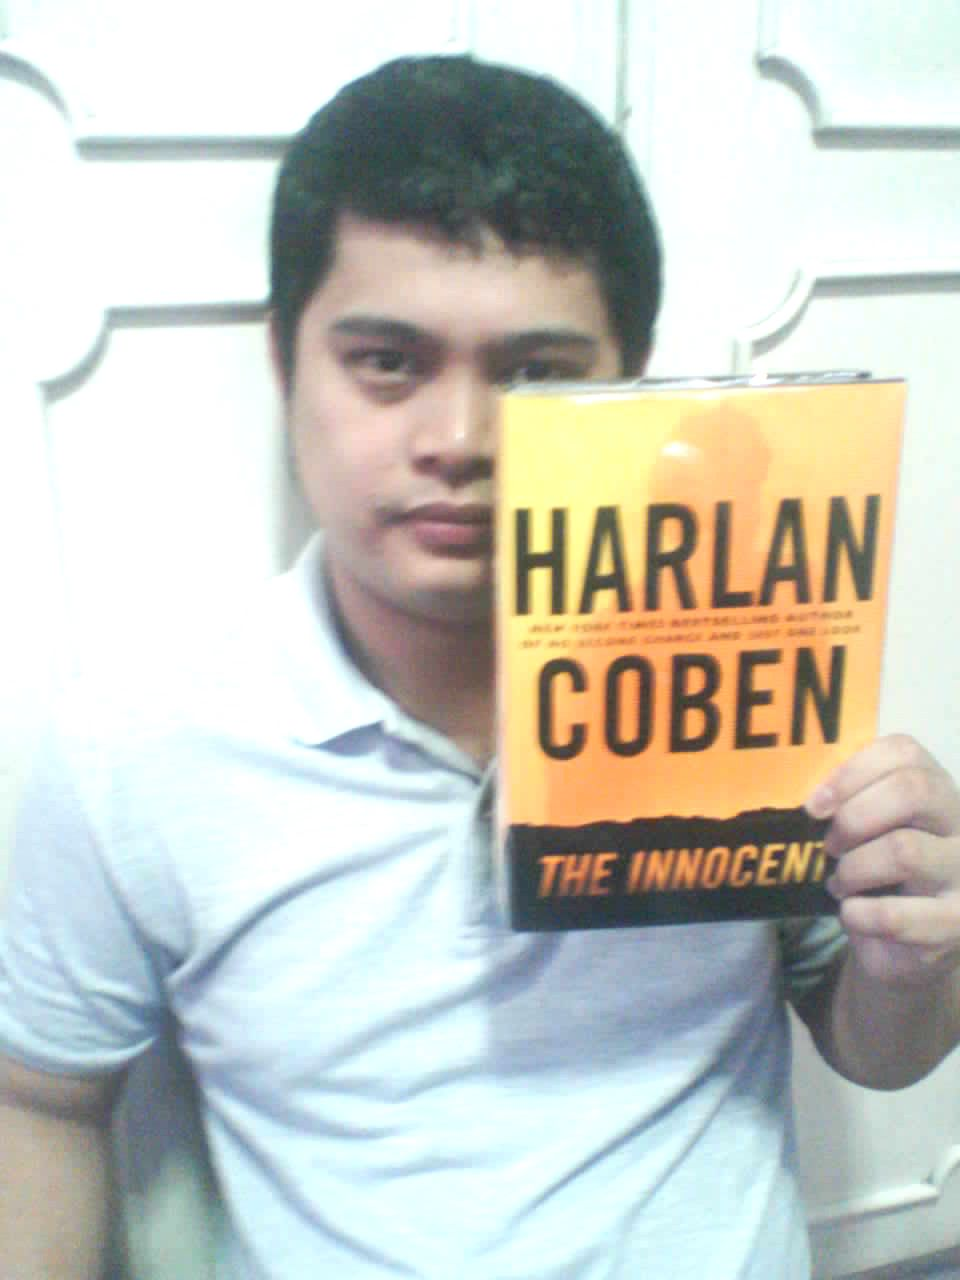 ßookable Reads☺: Review: The Innocent by Harlan Coben